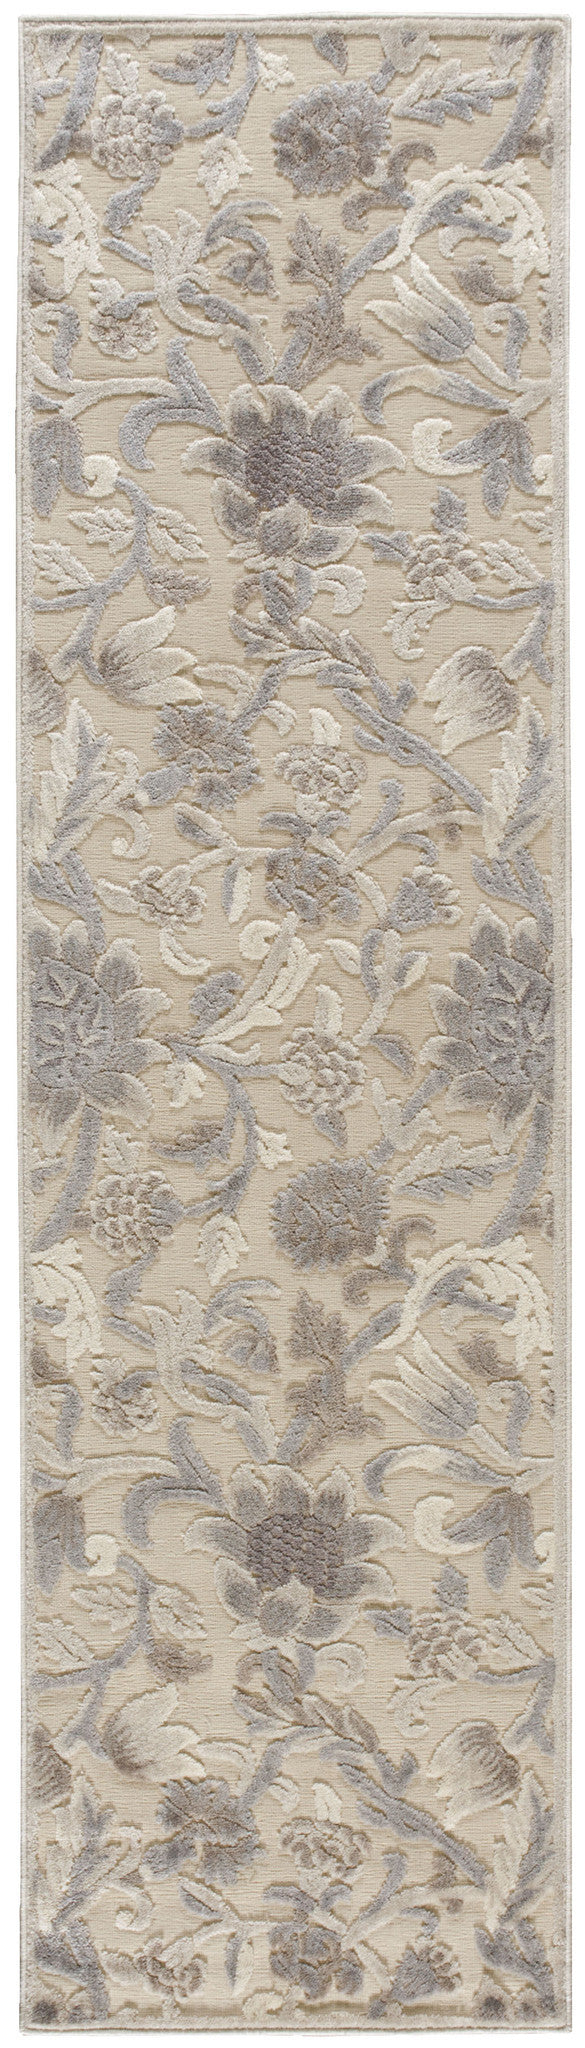 Nourison Graphic Illusions Ivory Area Rug GIL06 IV